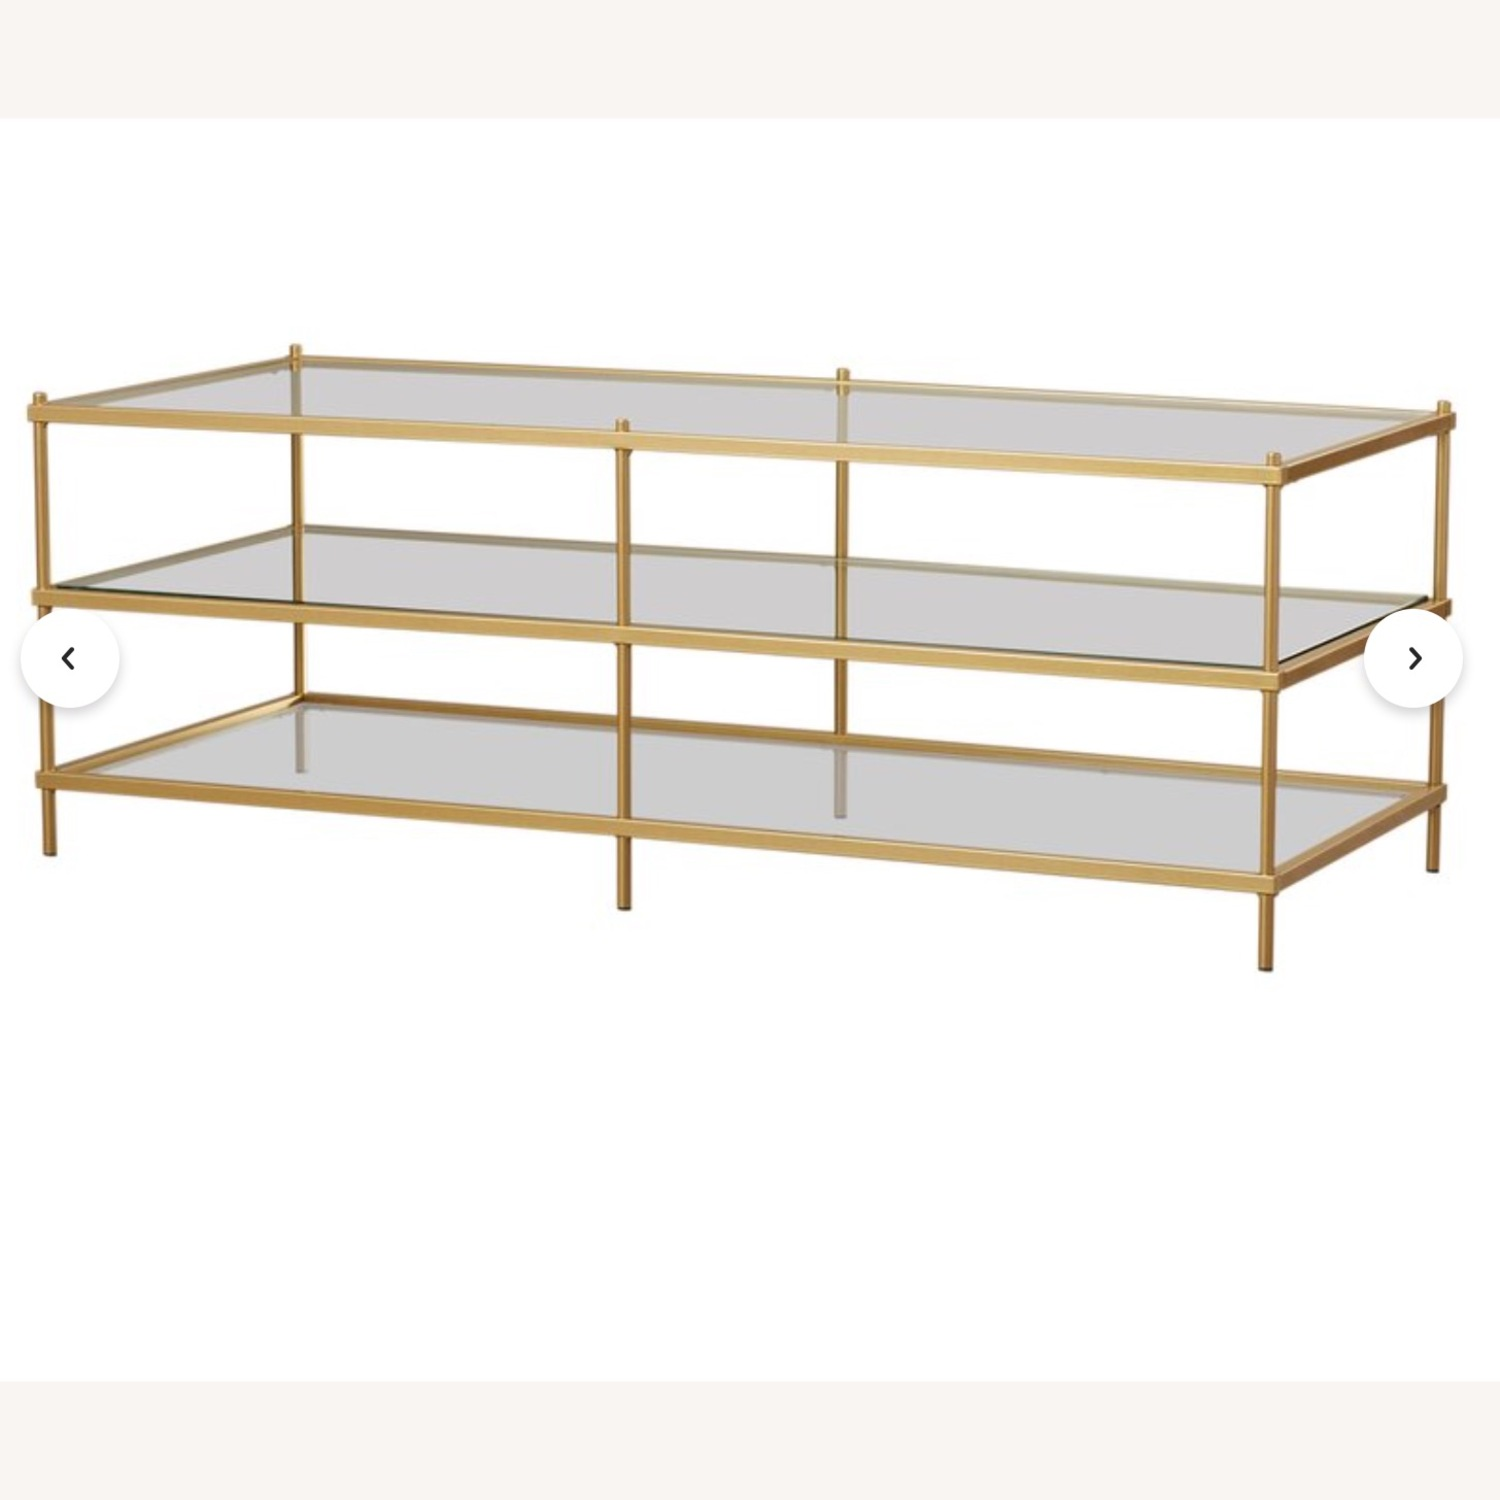 Wayfair Glass Table With Gold Detail - image-5